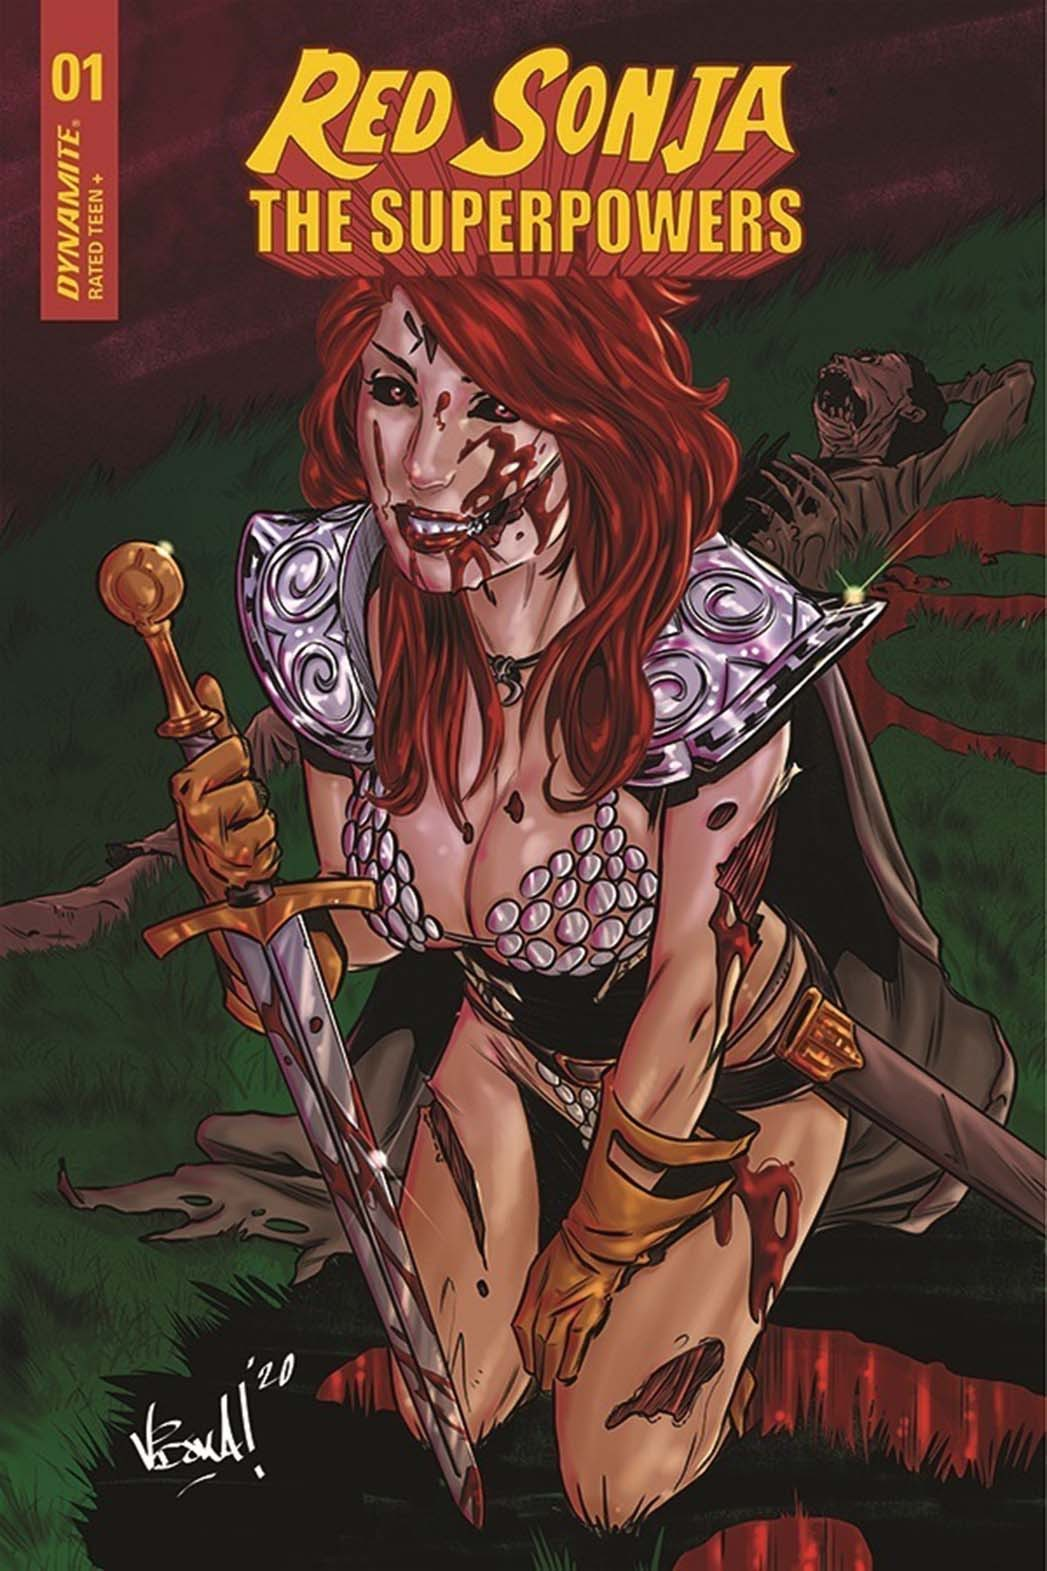 Red Sonja The Superpowers Announcement